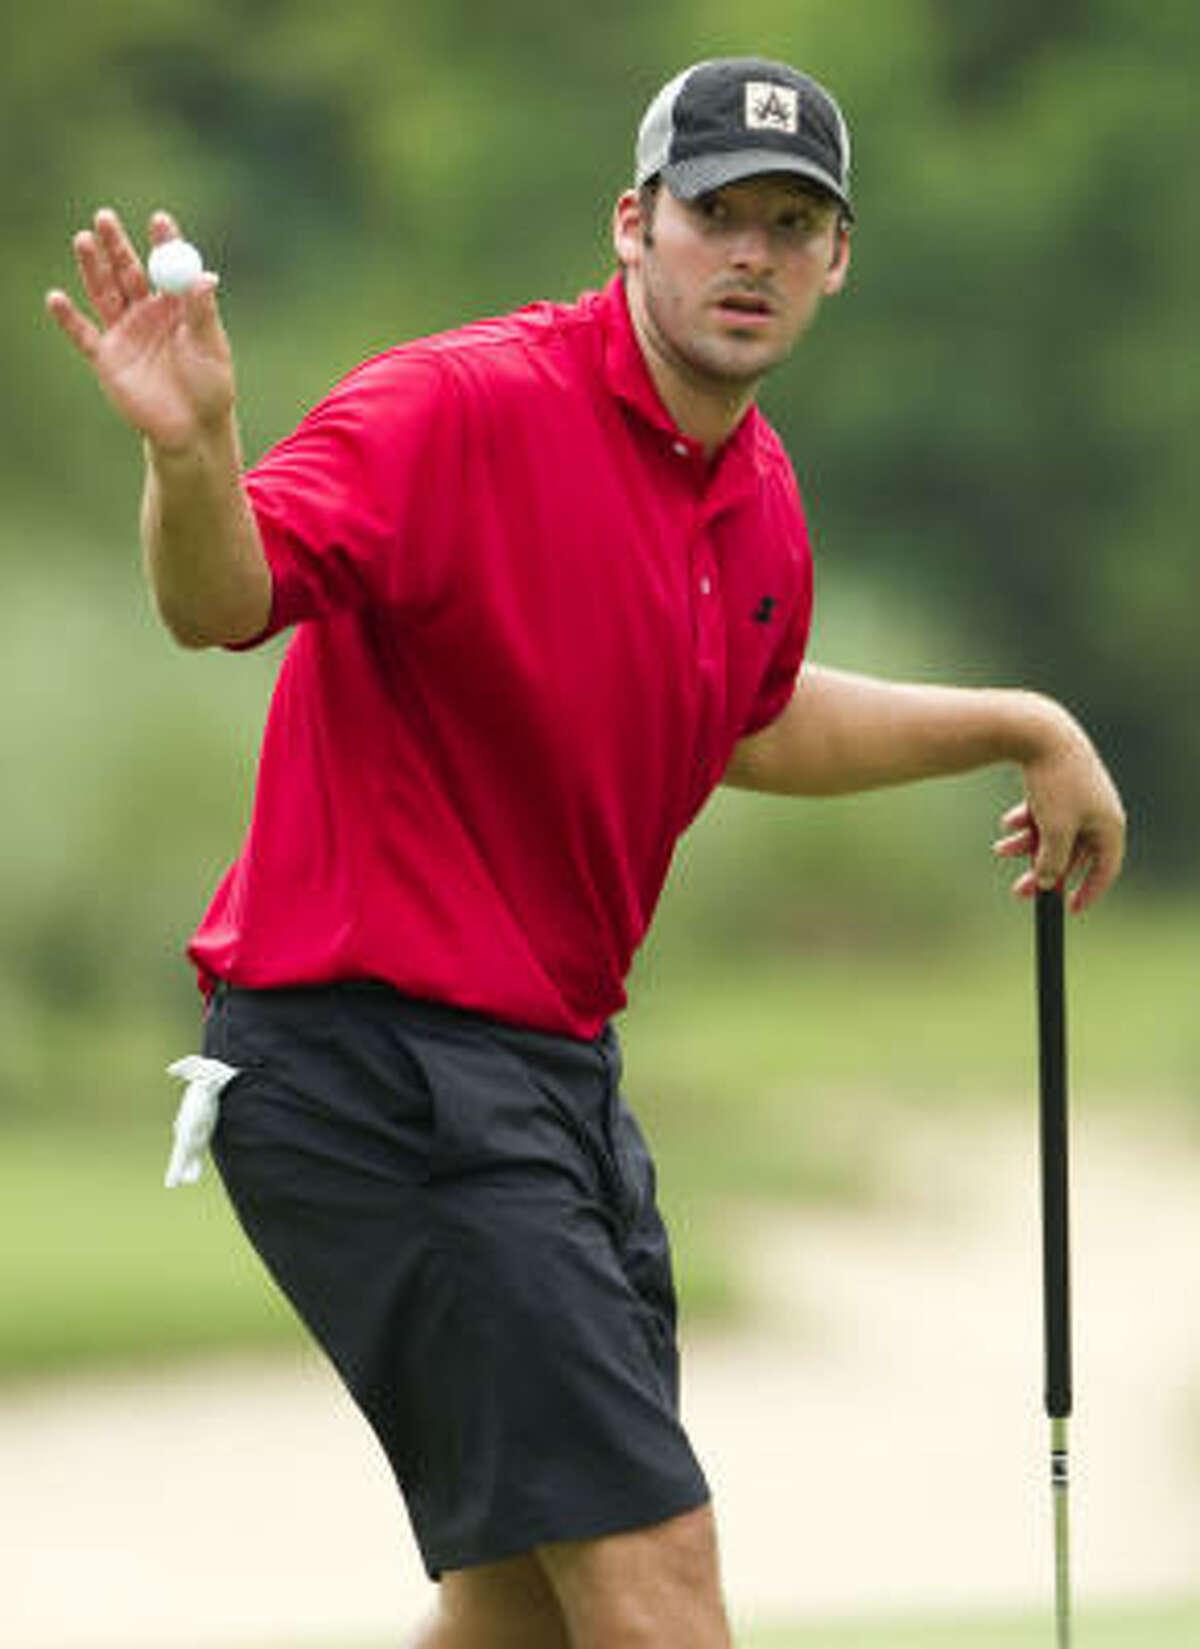 Tony Romo reacts after hitting a putt on No. 16.